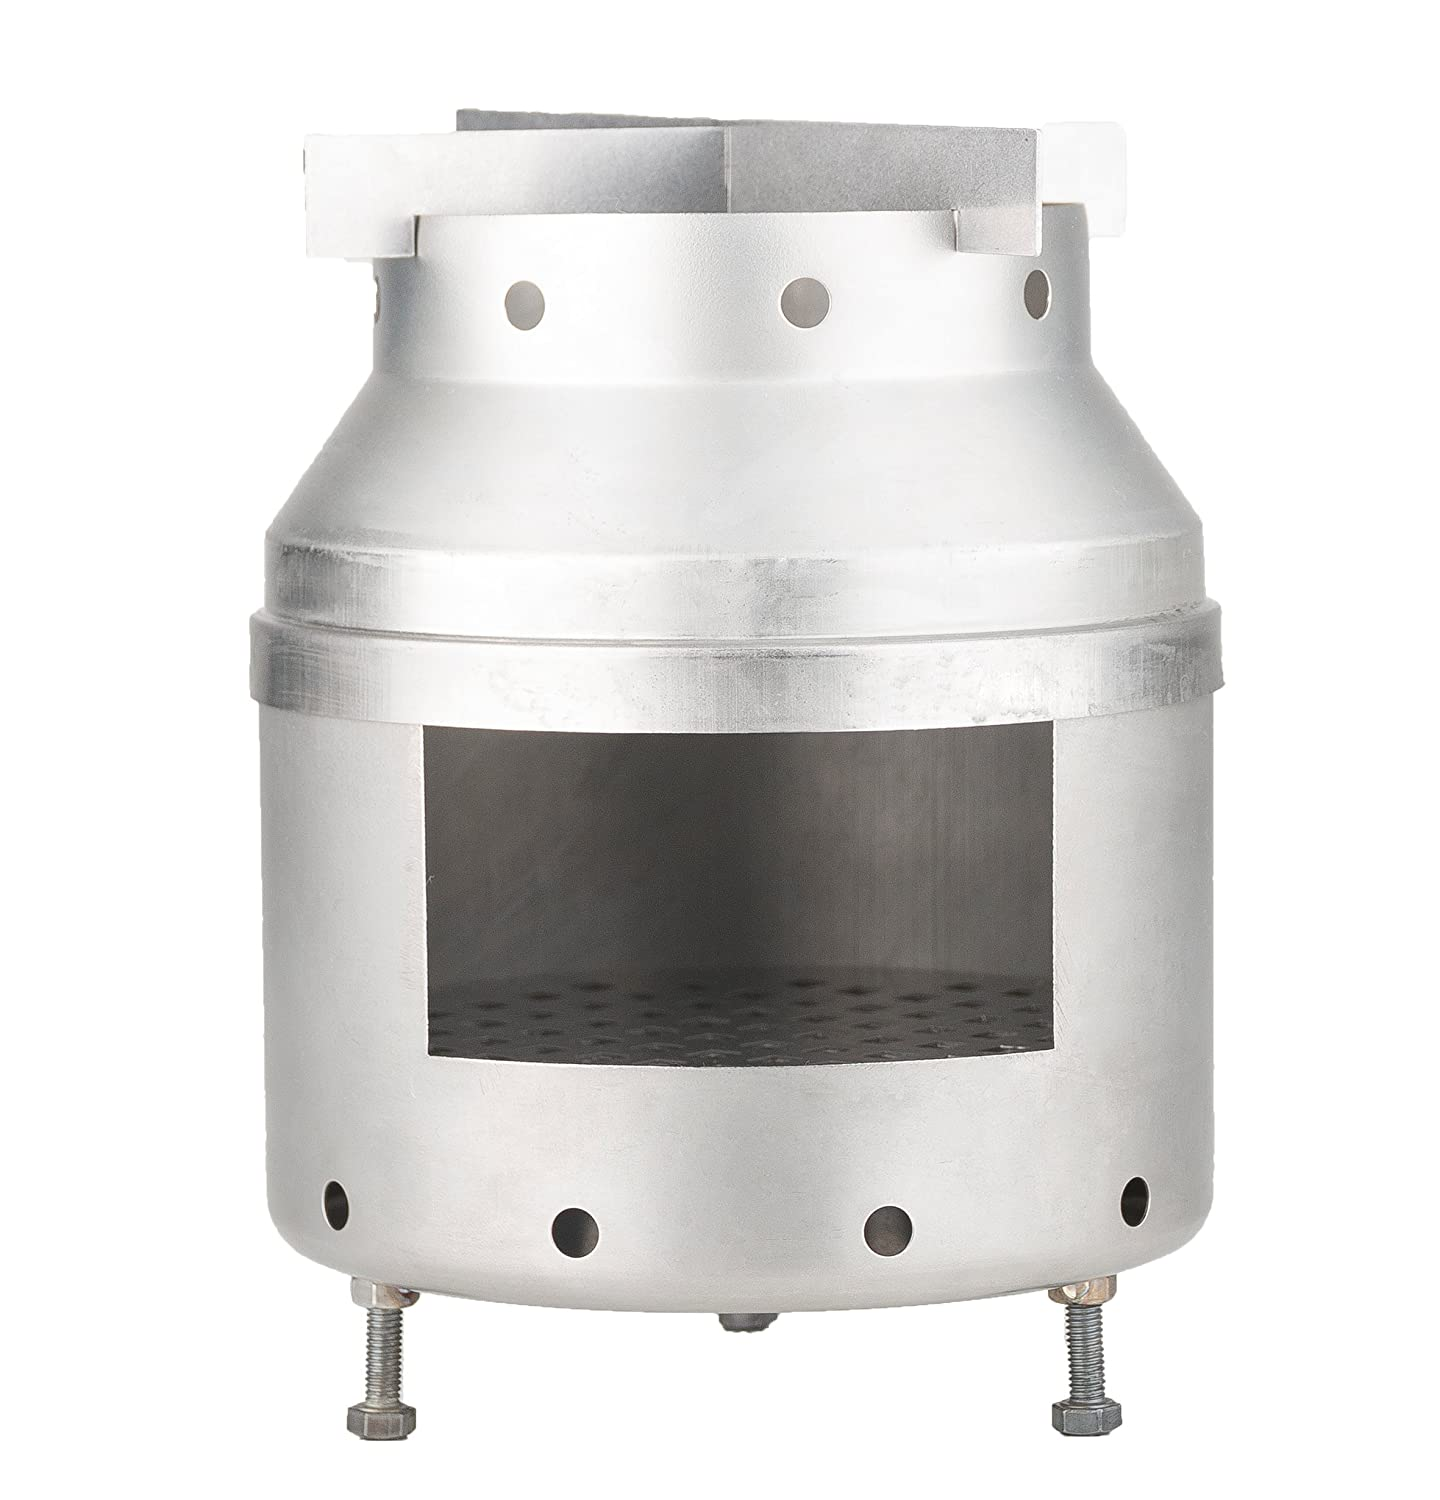 W.T.B. Outdoor Equipment hornillo - pocket stove: Amazon.es: Deportes y aire libre